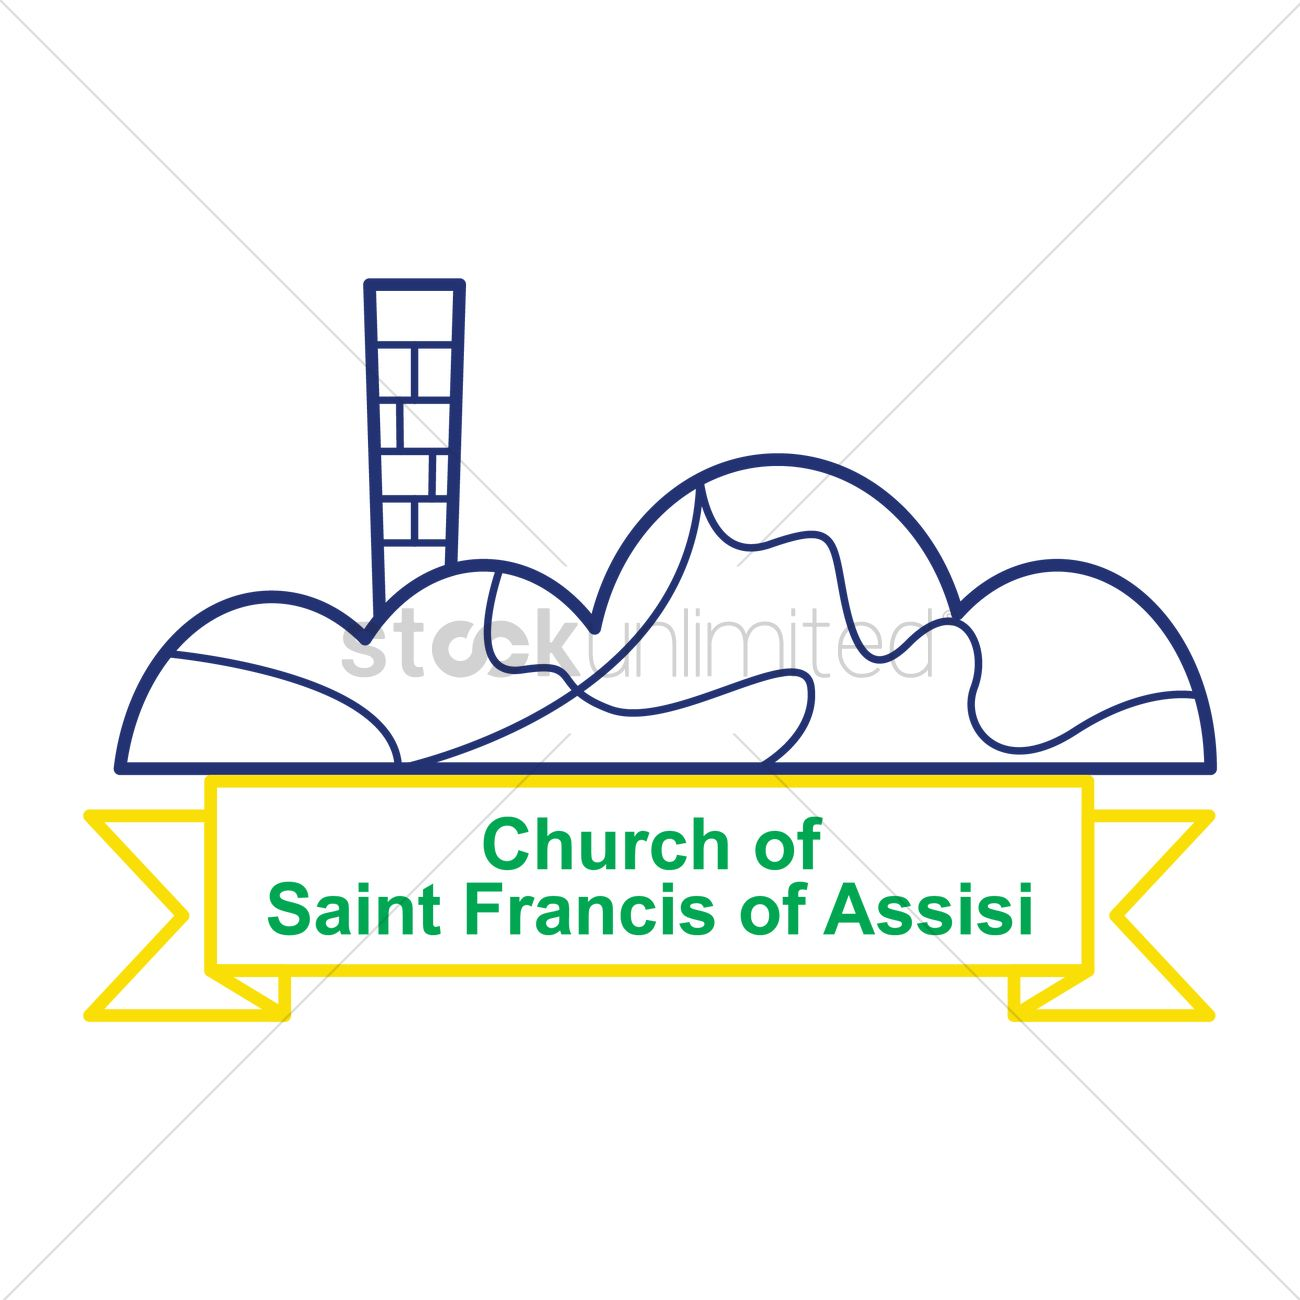 Church of saint francis of assisi Vector Image.